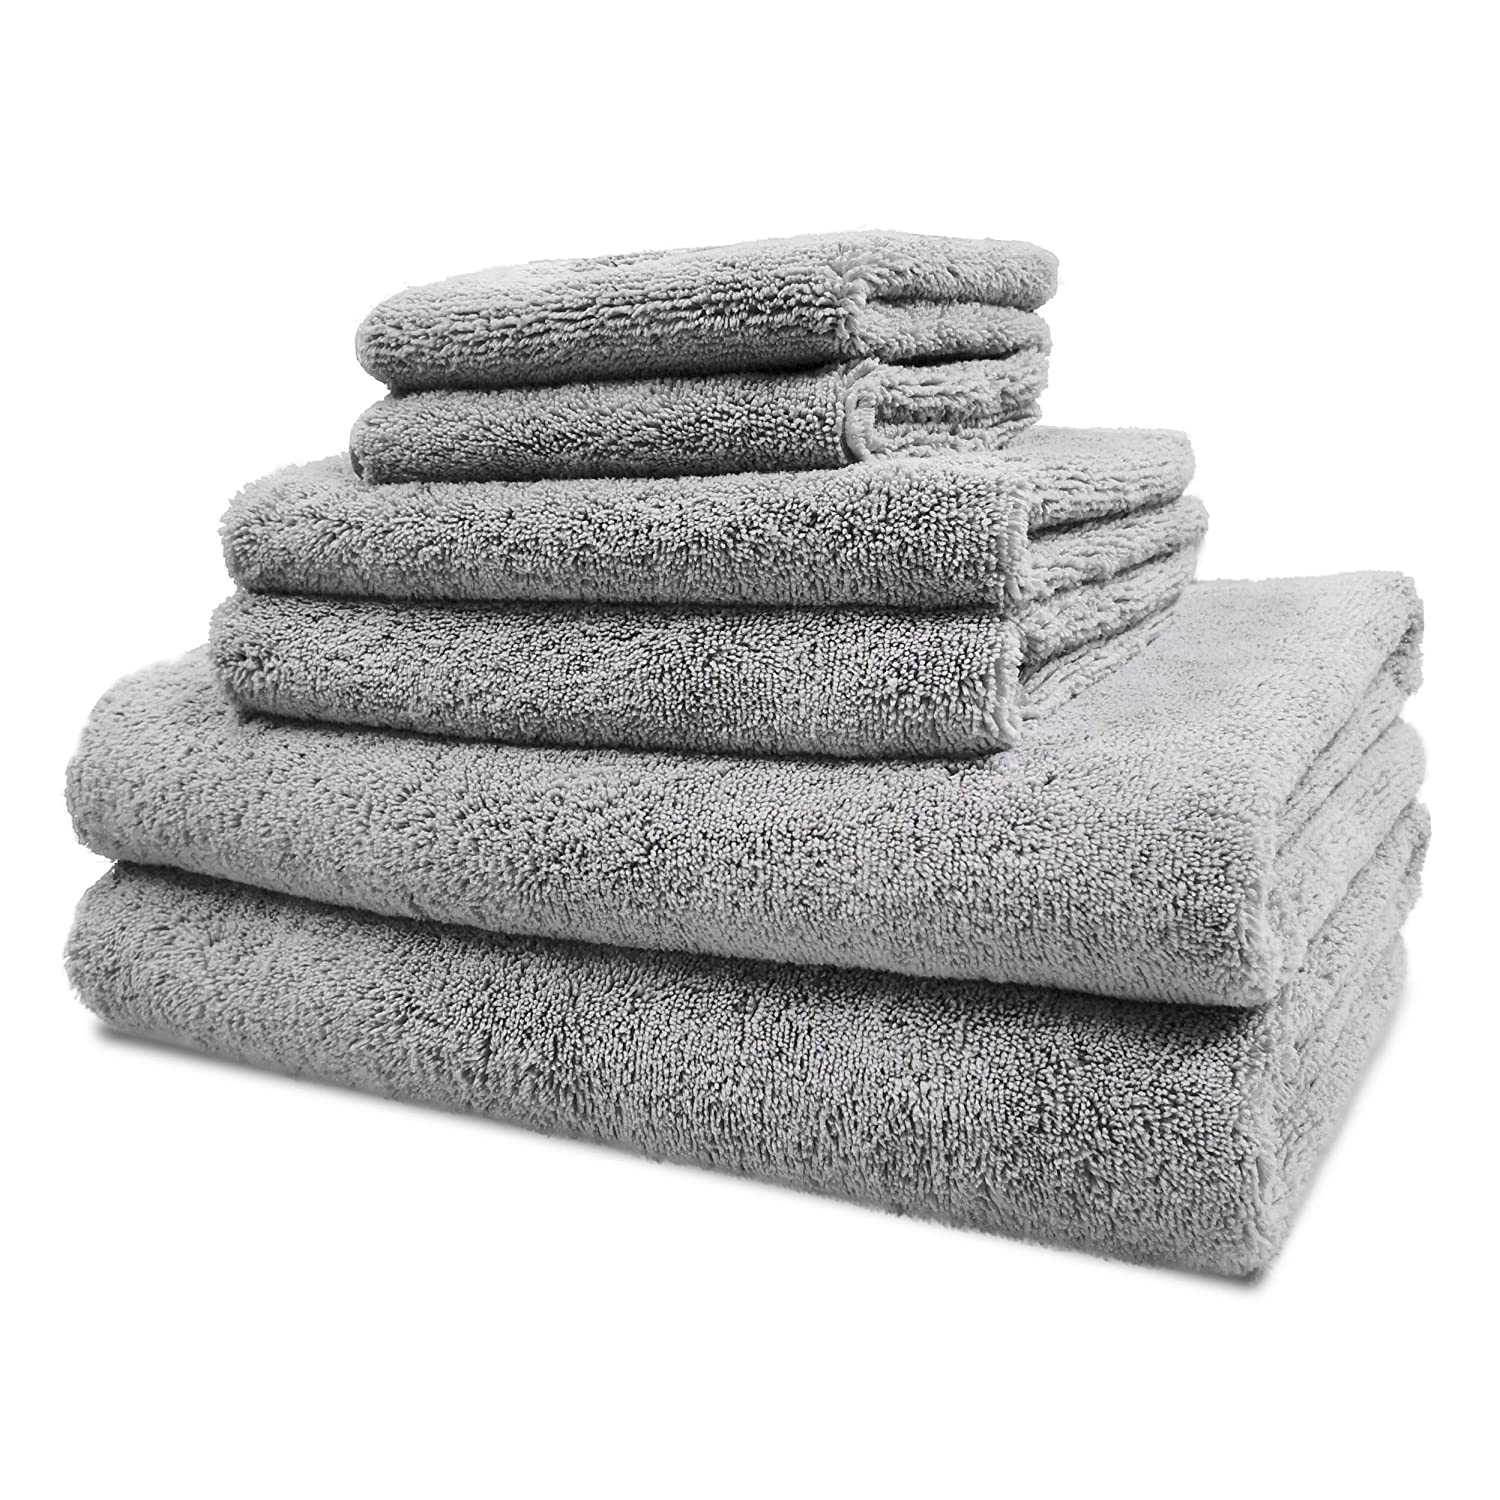 Polyte Luxury Microfiber Bath Towels Lint Free